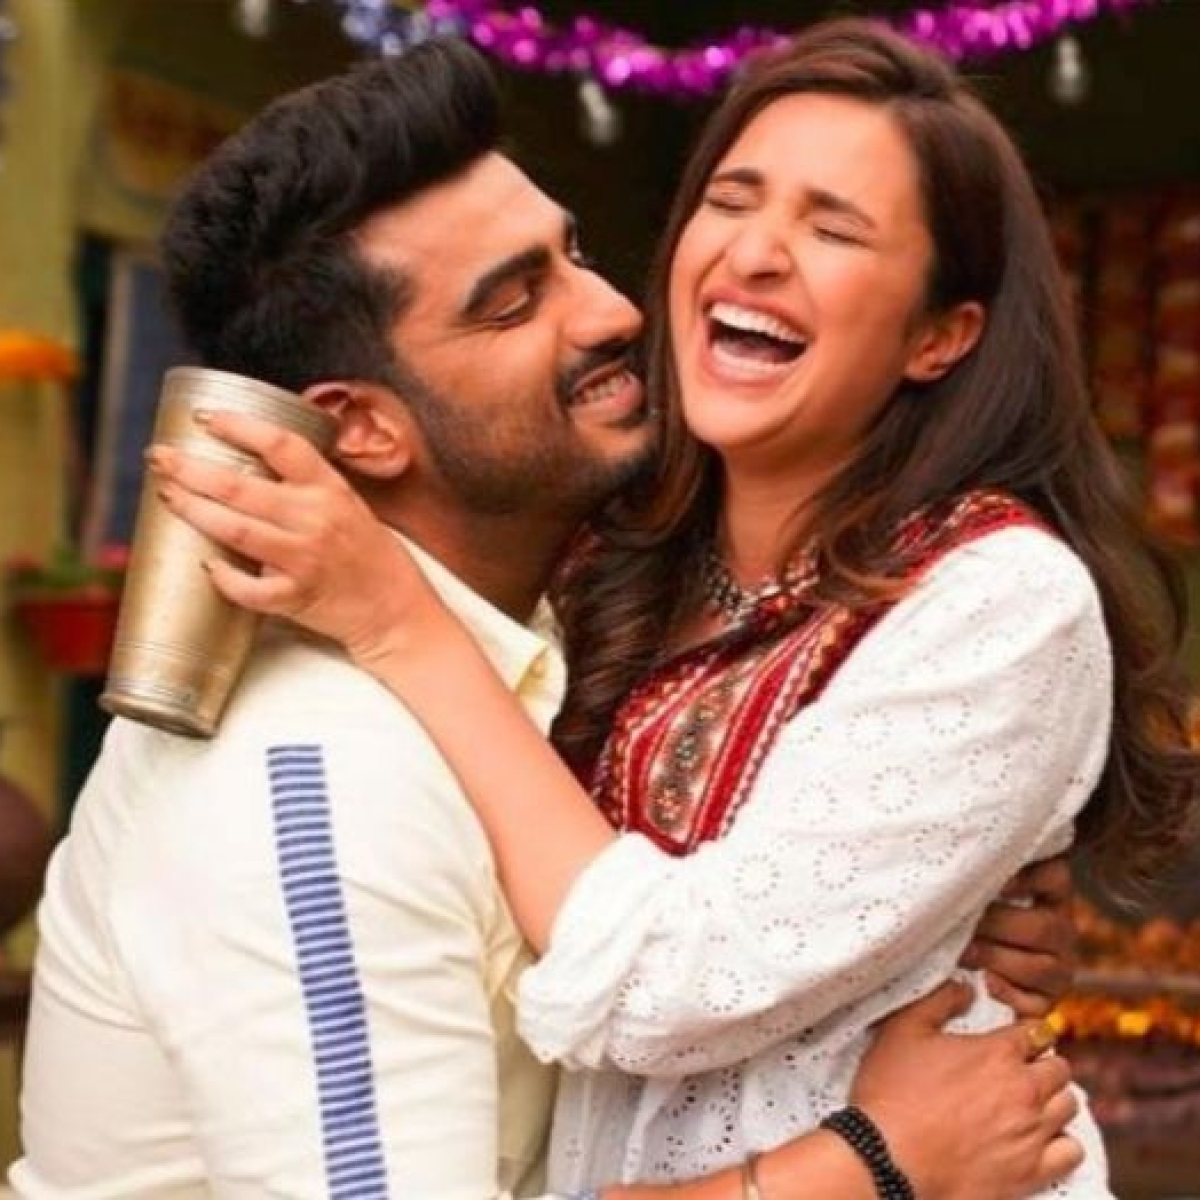 Parineeti Chopra reacts hilariously on Arjun Kapoor's new picture